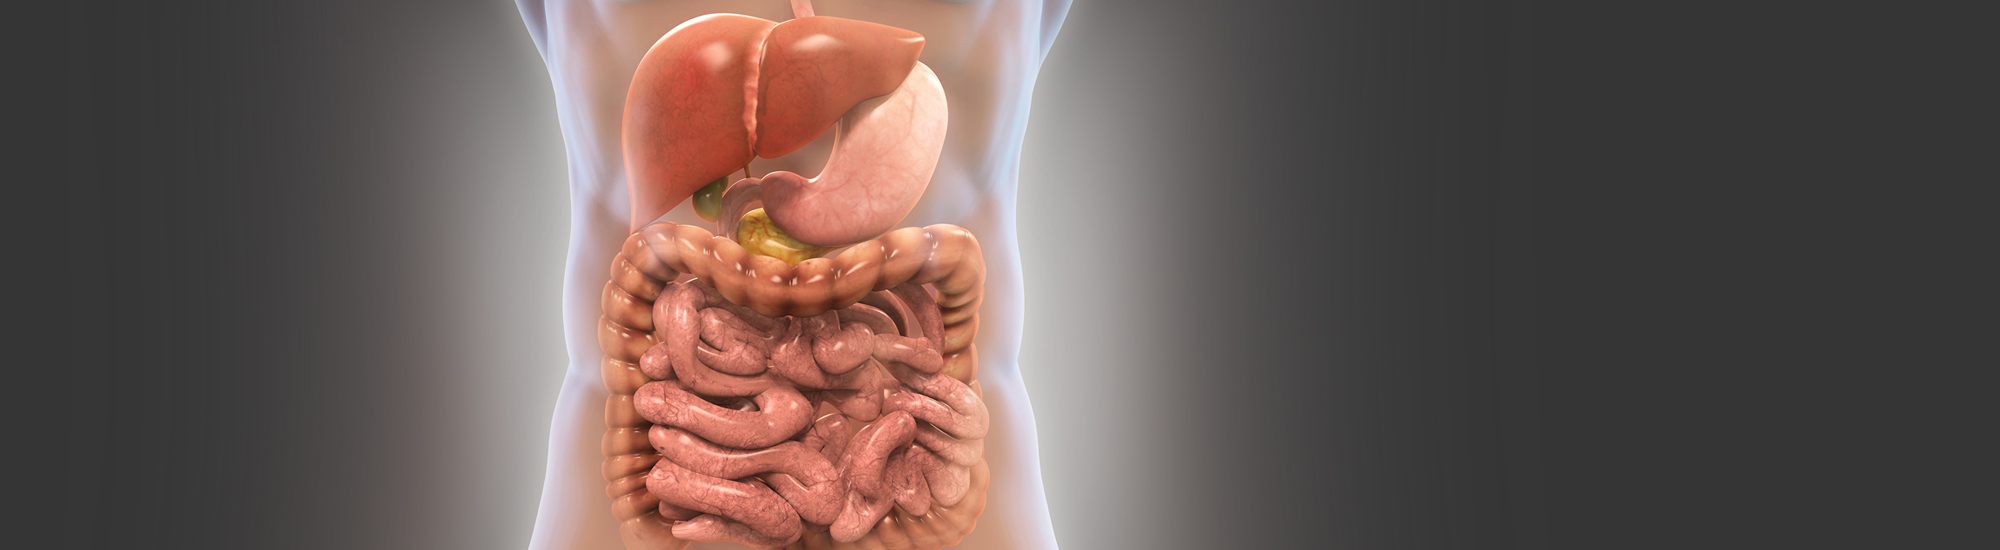 Ayurvedic treatment for What is Gastrointestinal system- concept of agni